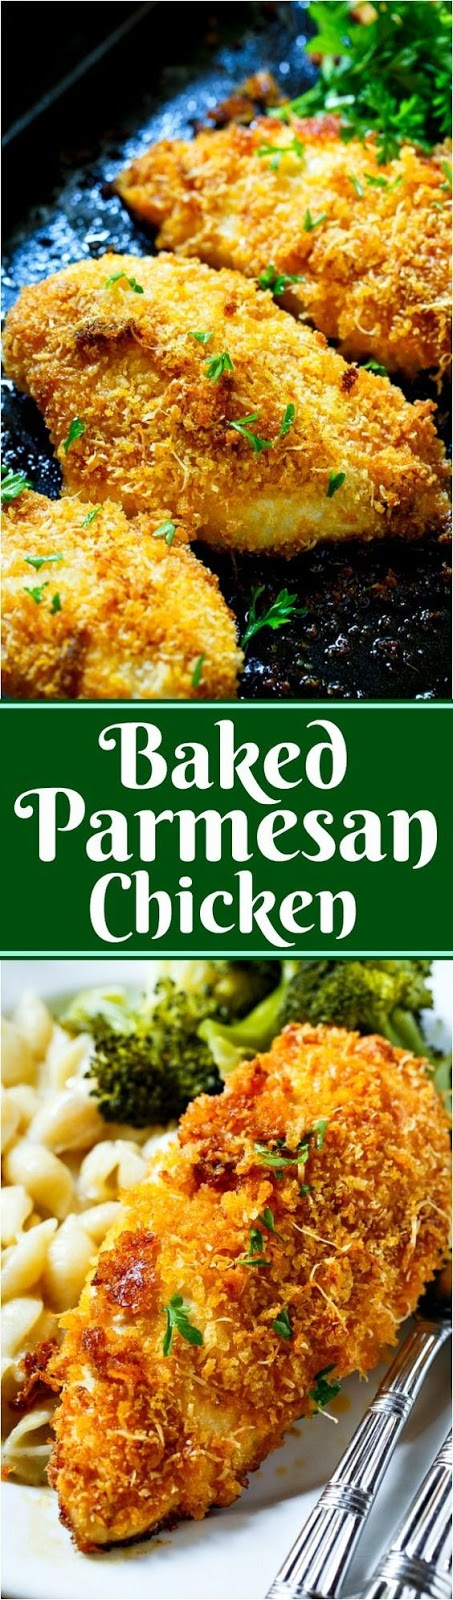 Delicious Baked Parmesan Chicken